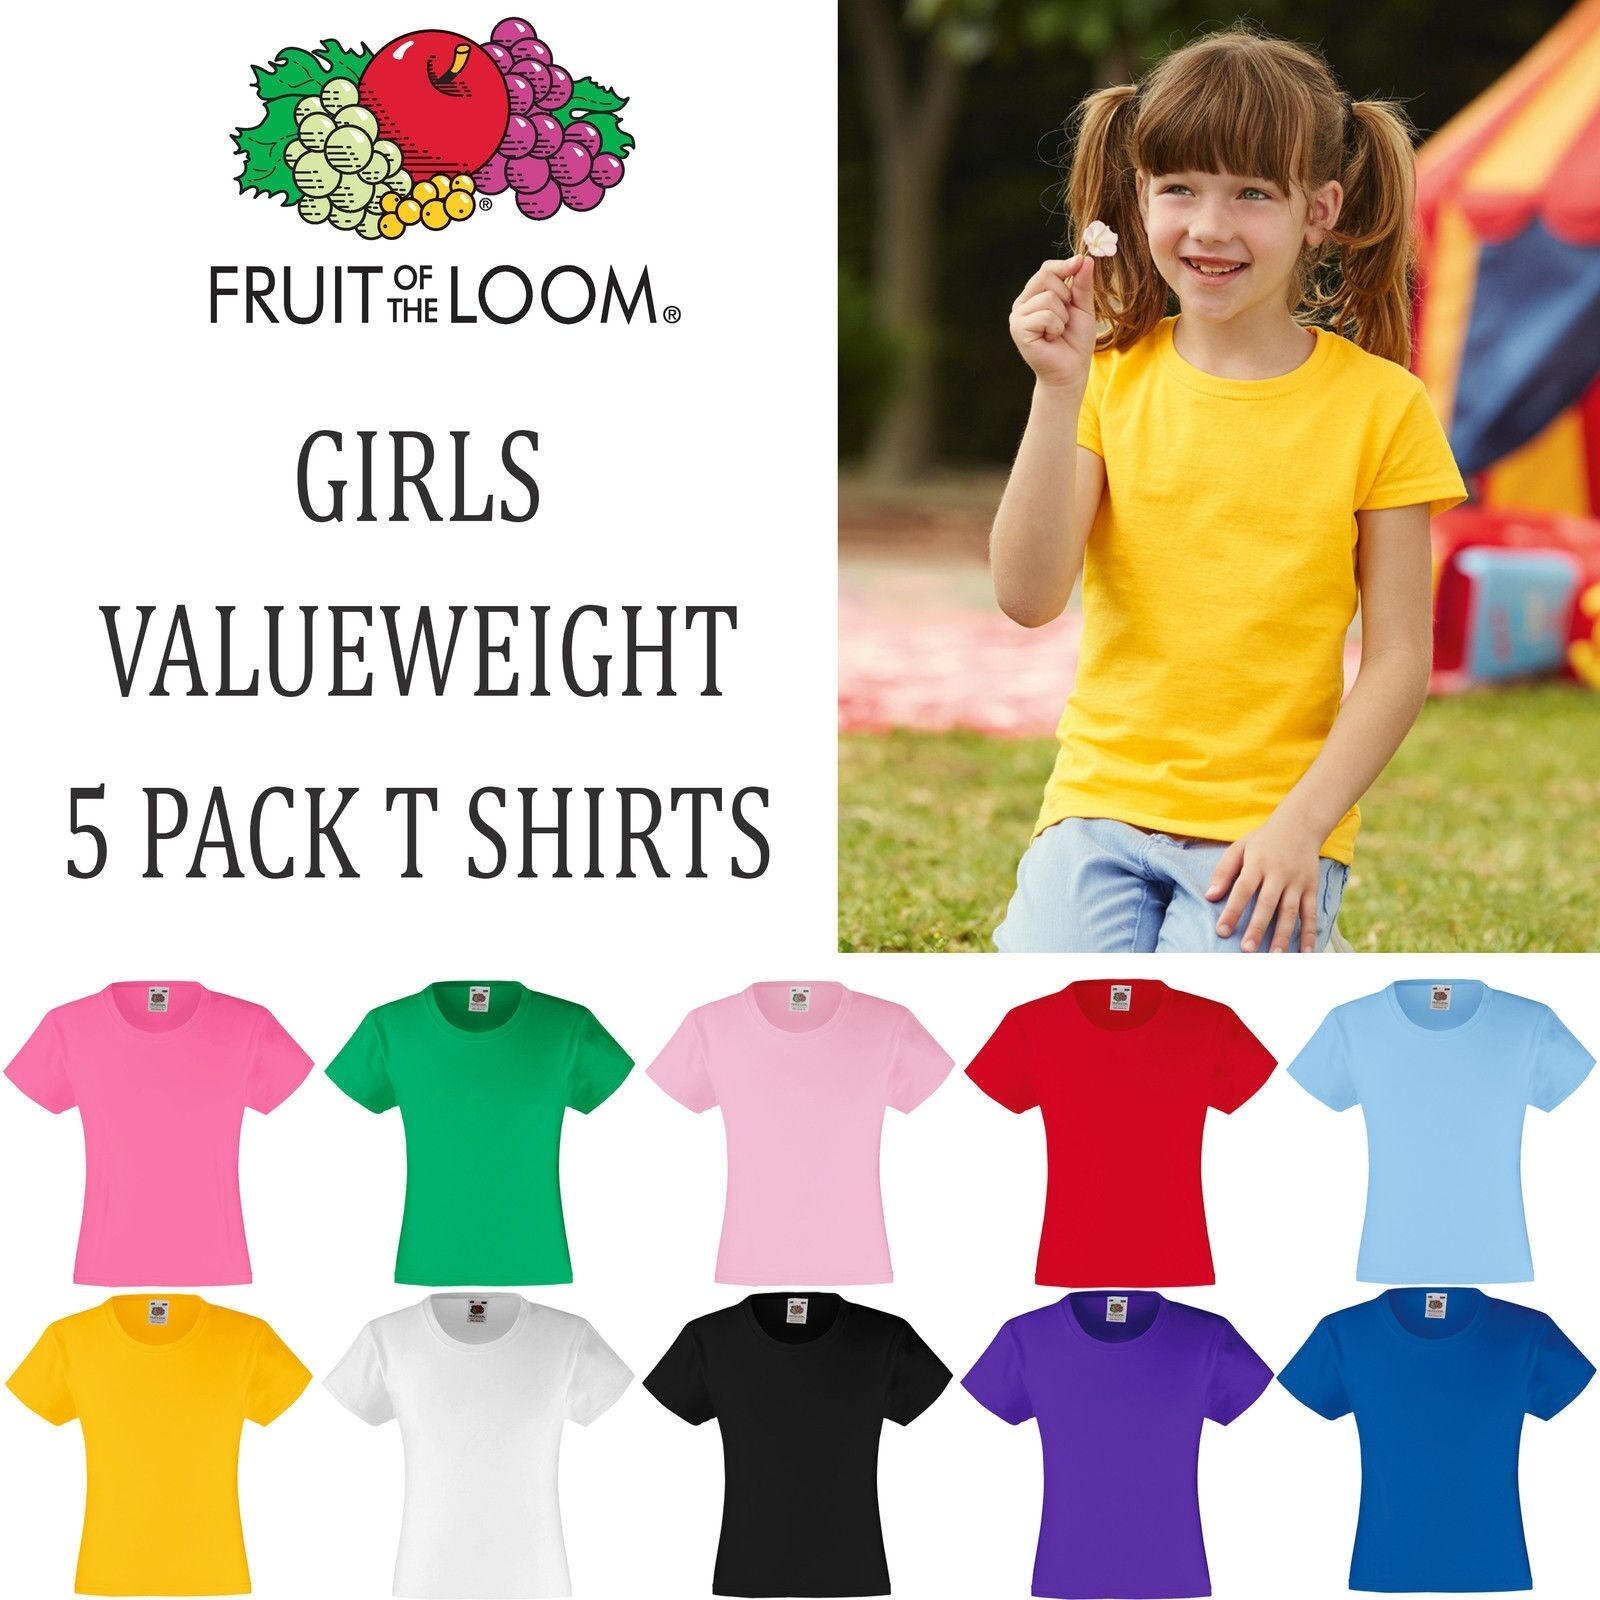 Pack of 5 FRUIT OF THE LOOM Girls Valueweight T-Shirt